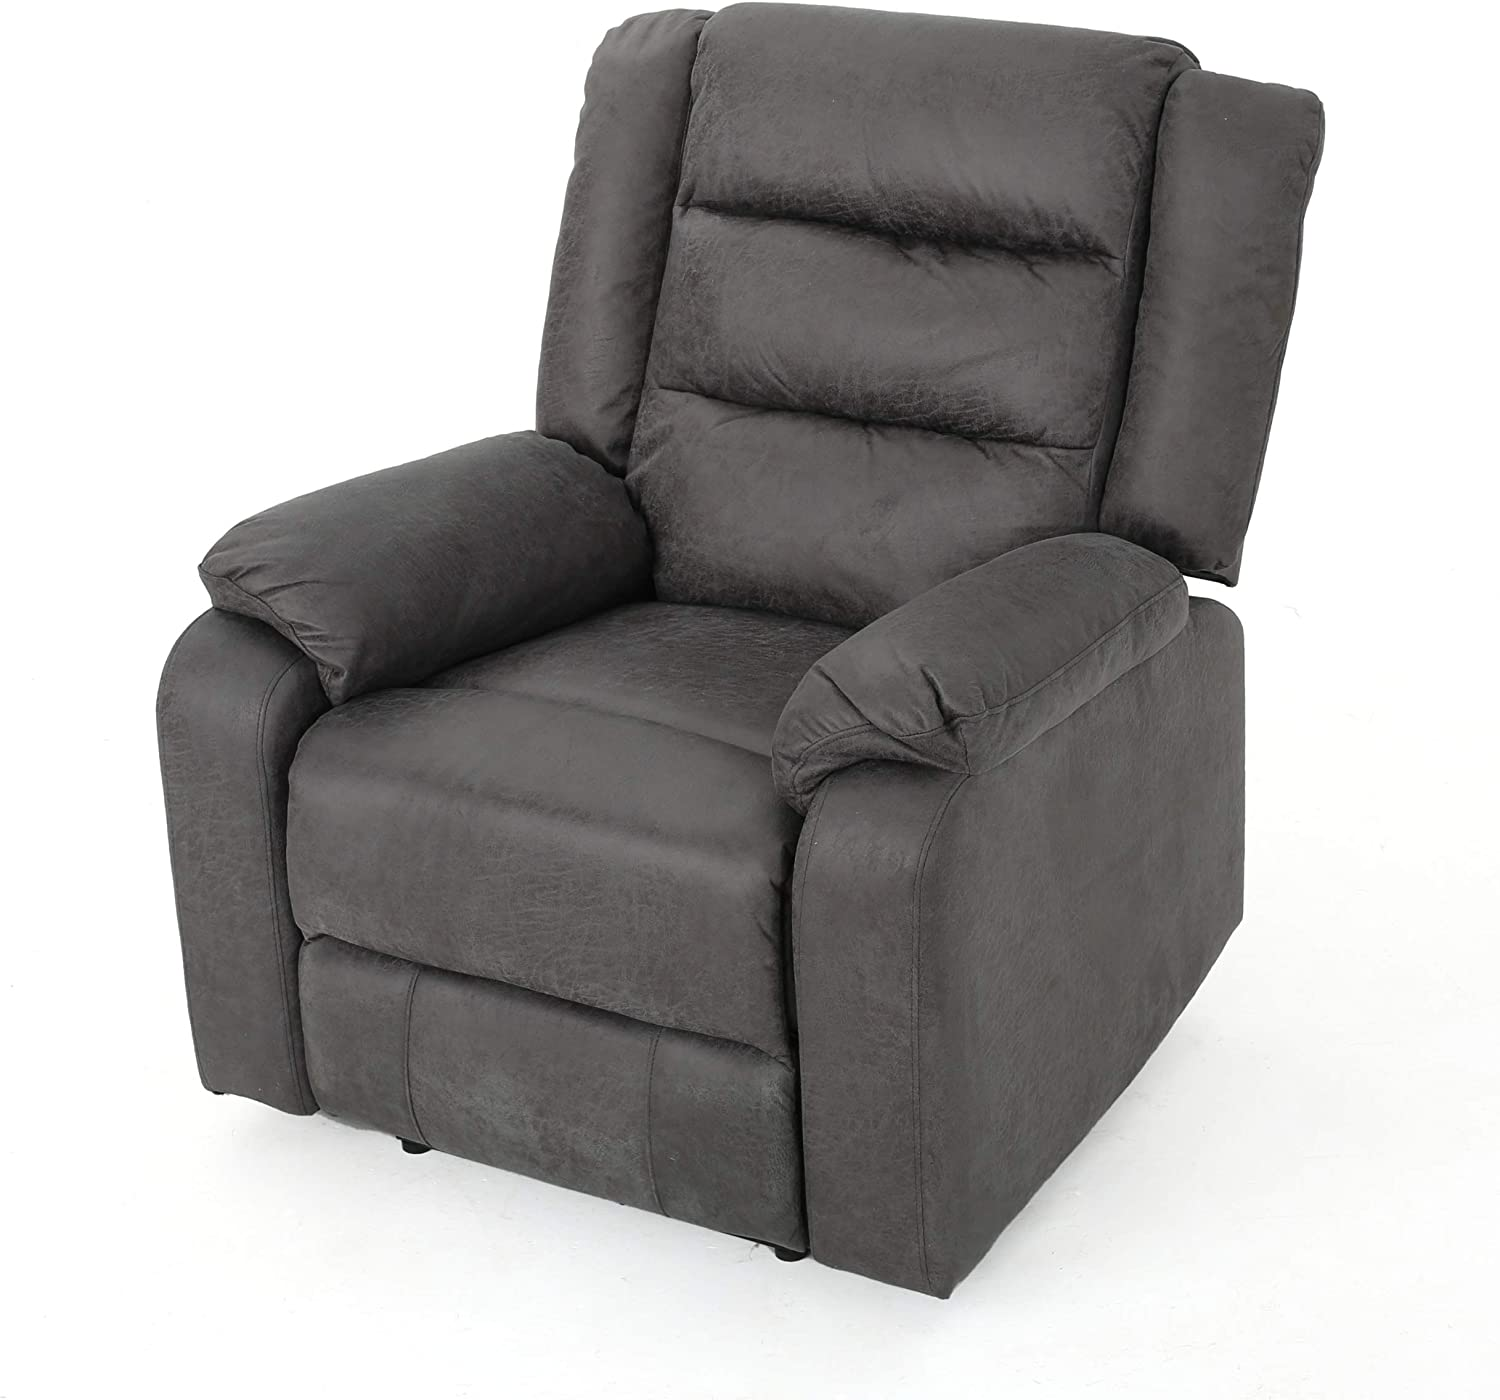 Christopher Knight Home Adrianne Cushioned Microfiber Power Recliner, Slate / Black